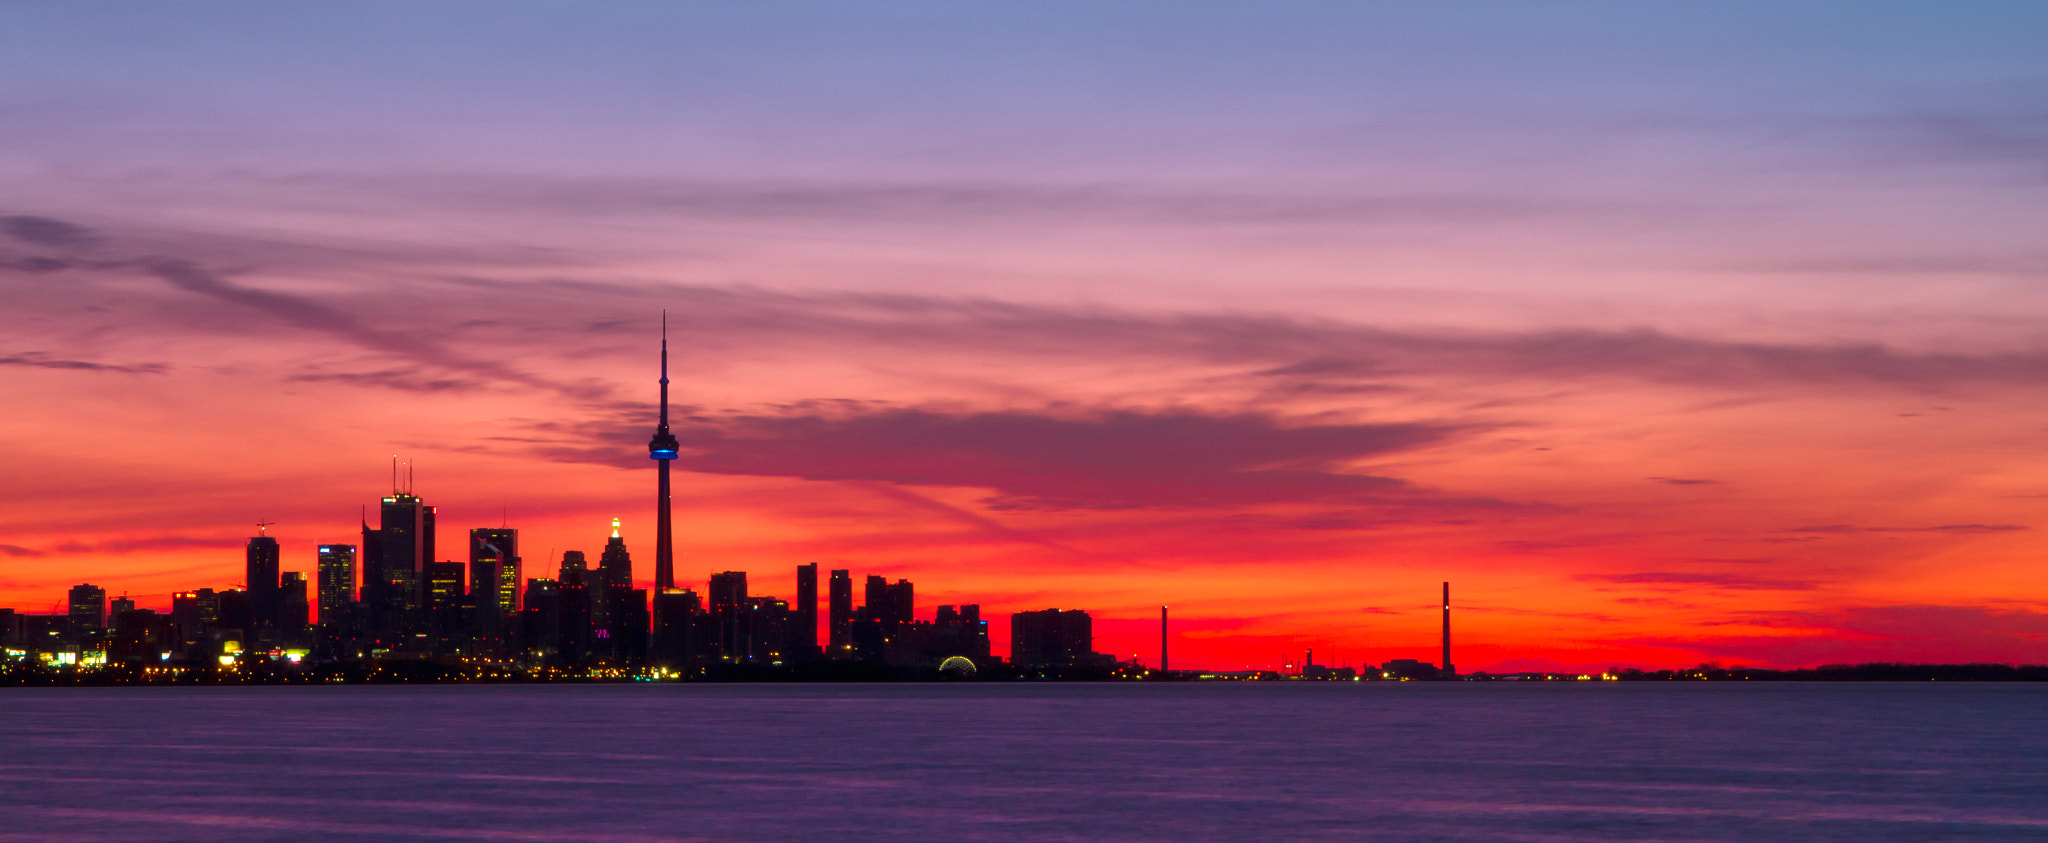 Photograph Just another Toronto Sunrise by Greg David on 500px